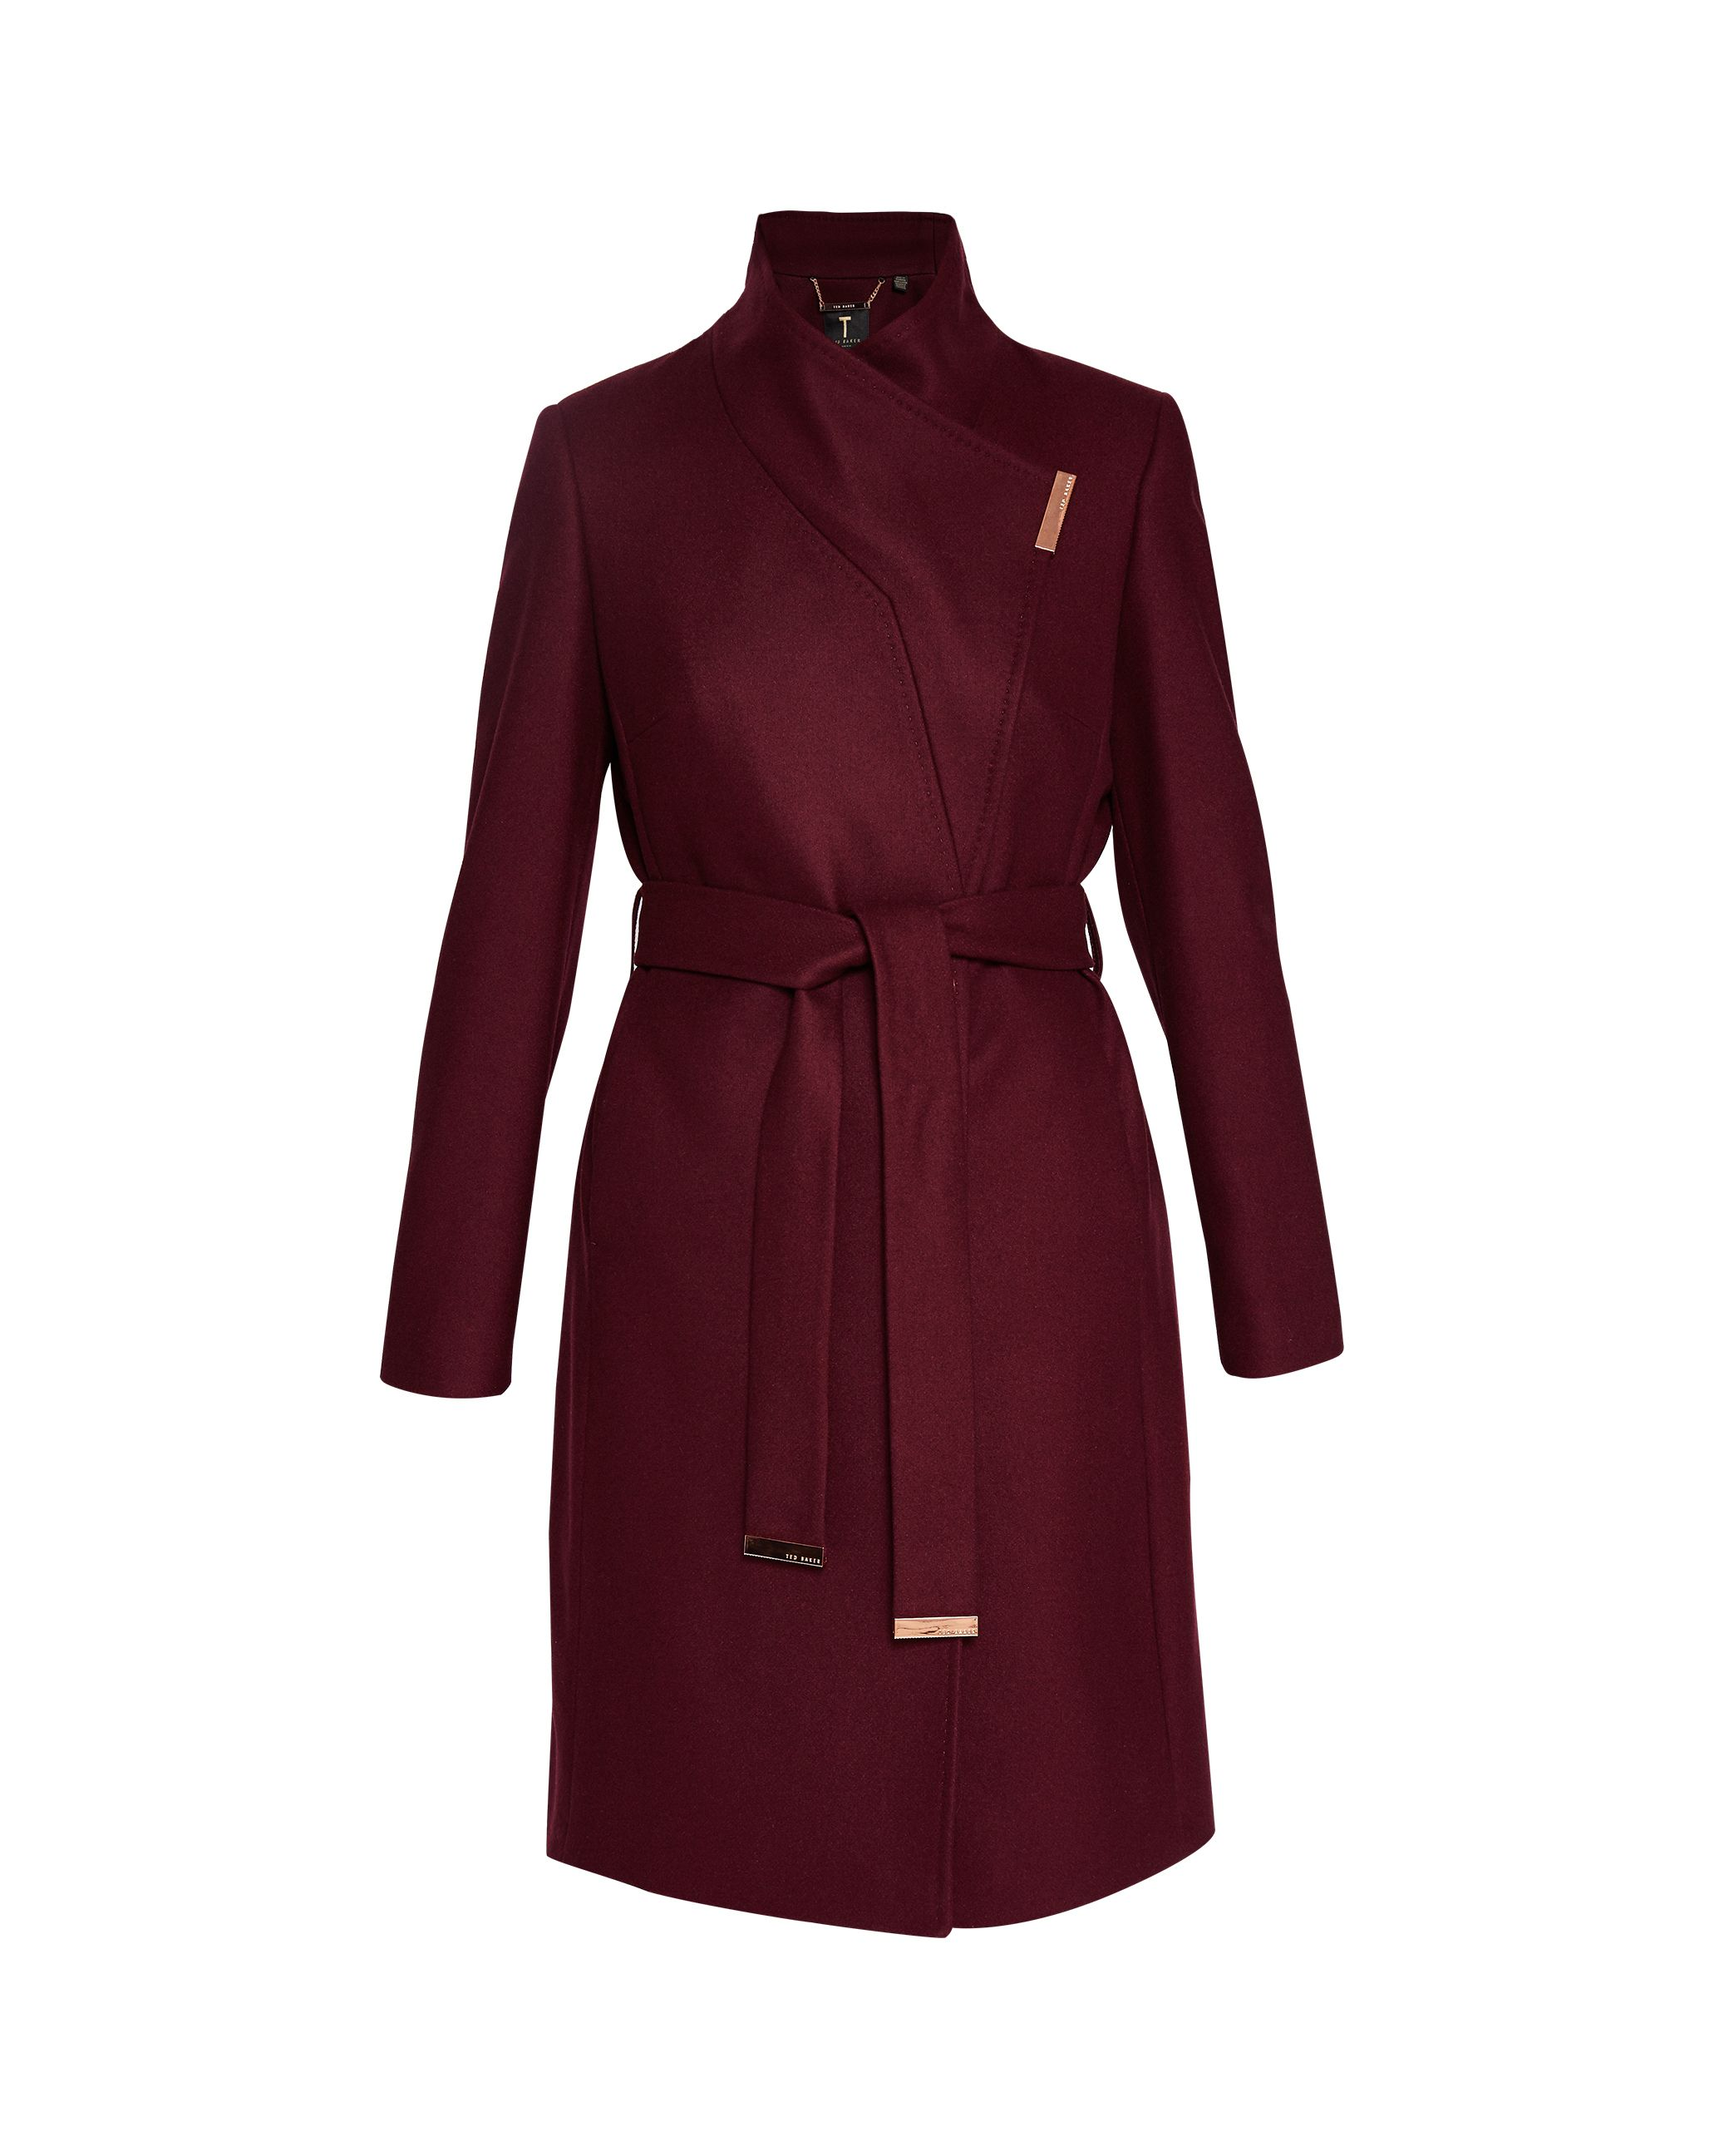 Ted Baker Kikiie Cashmere-Blend Wrap Front Coat, Maroon